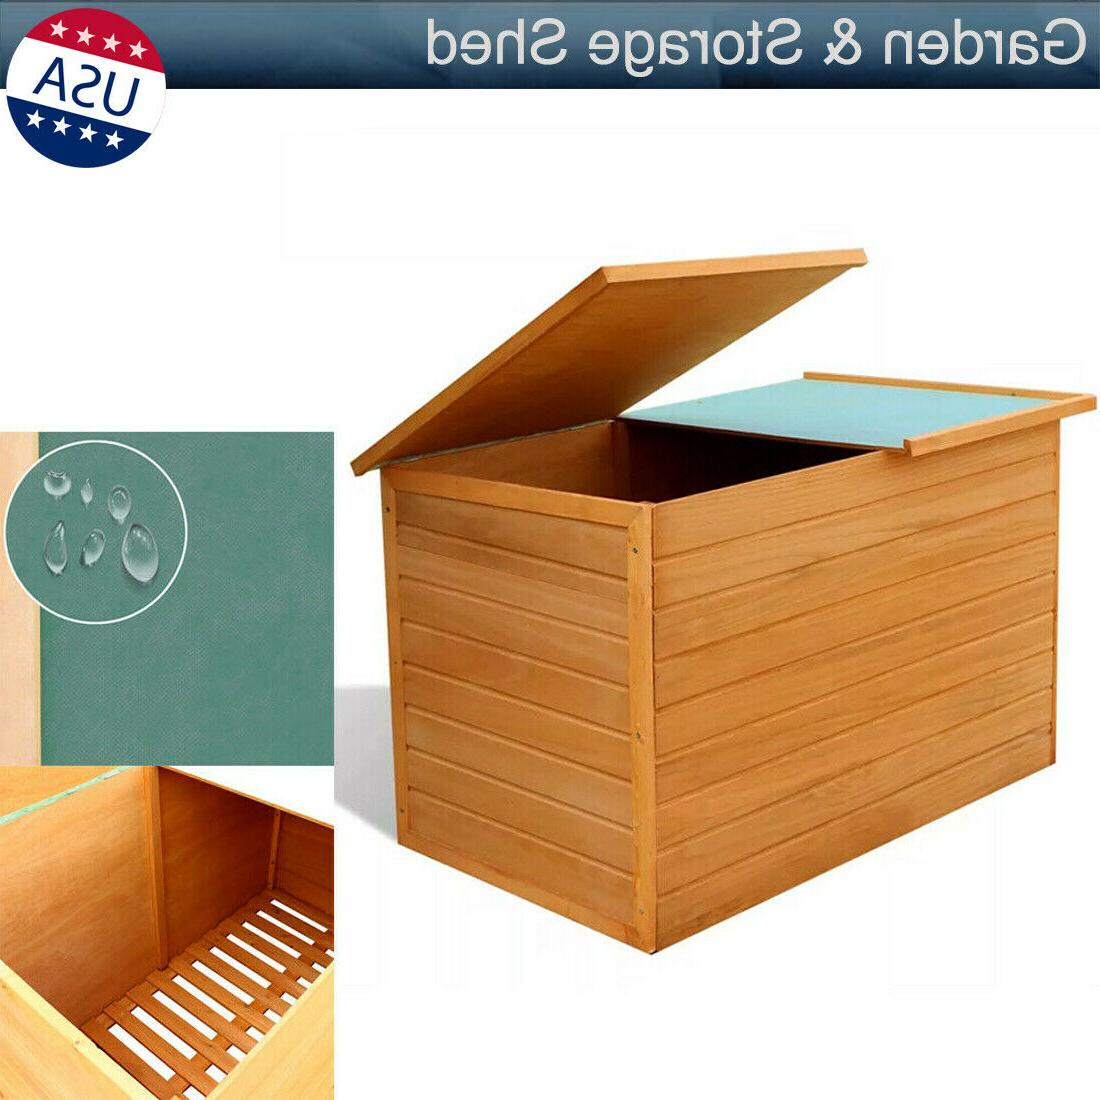 wood tool box outdoor garden shed storage